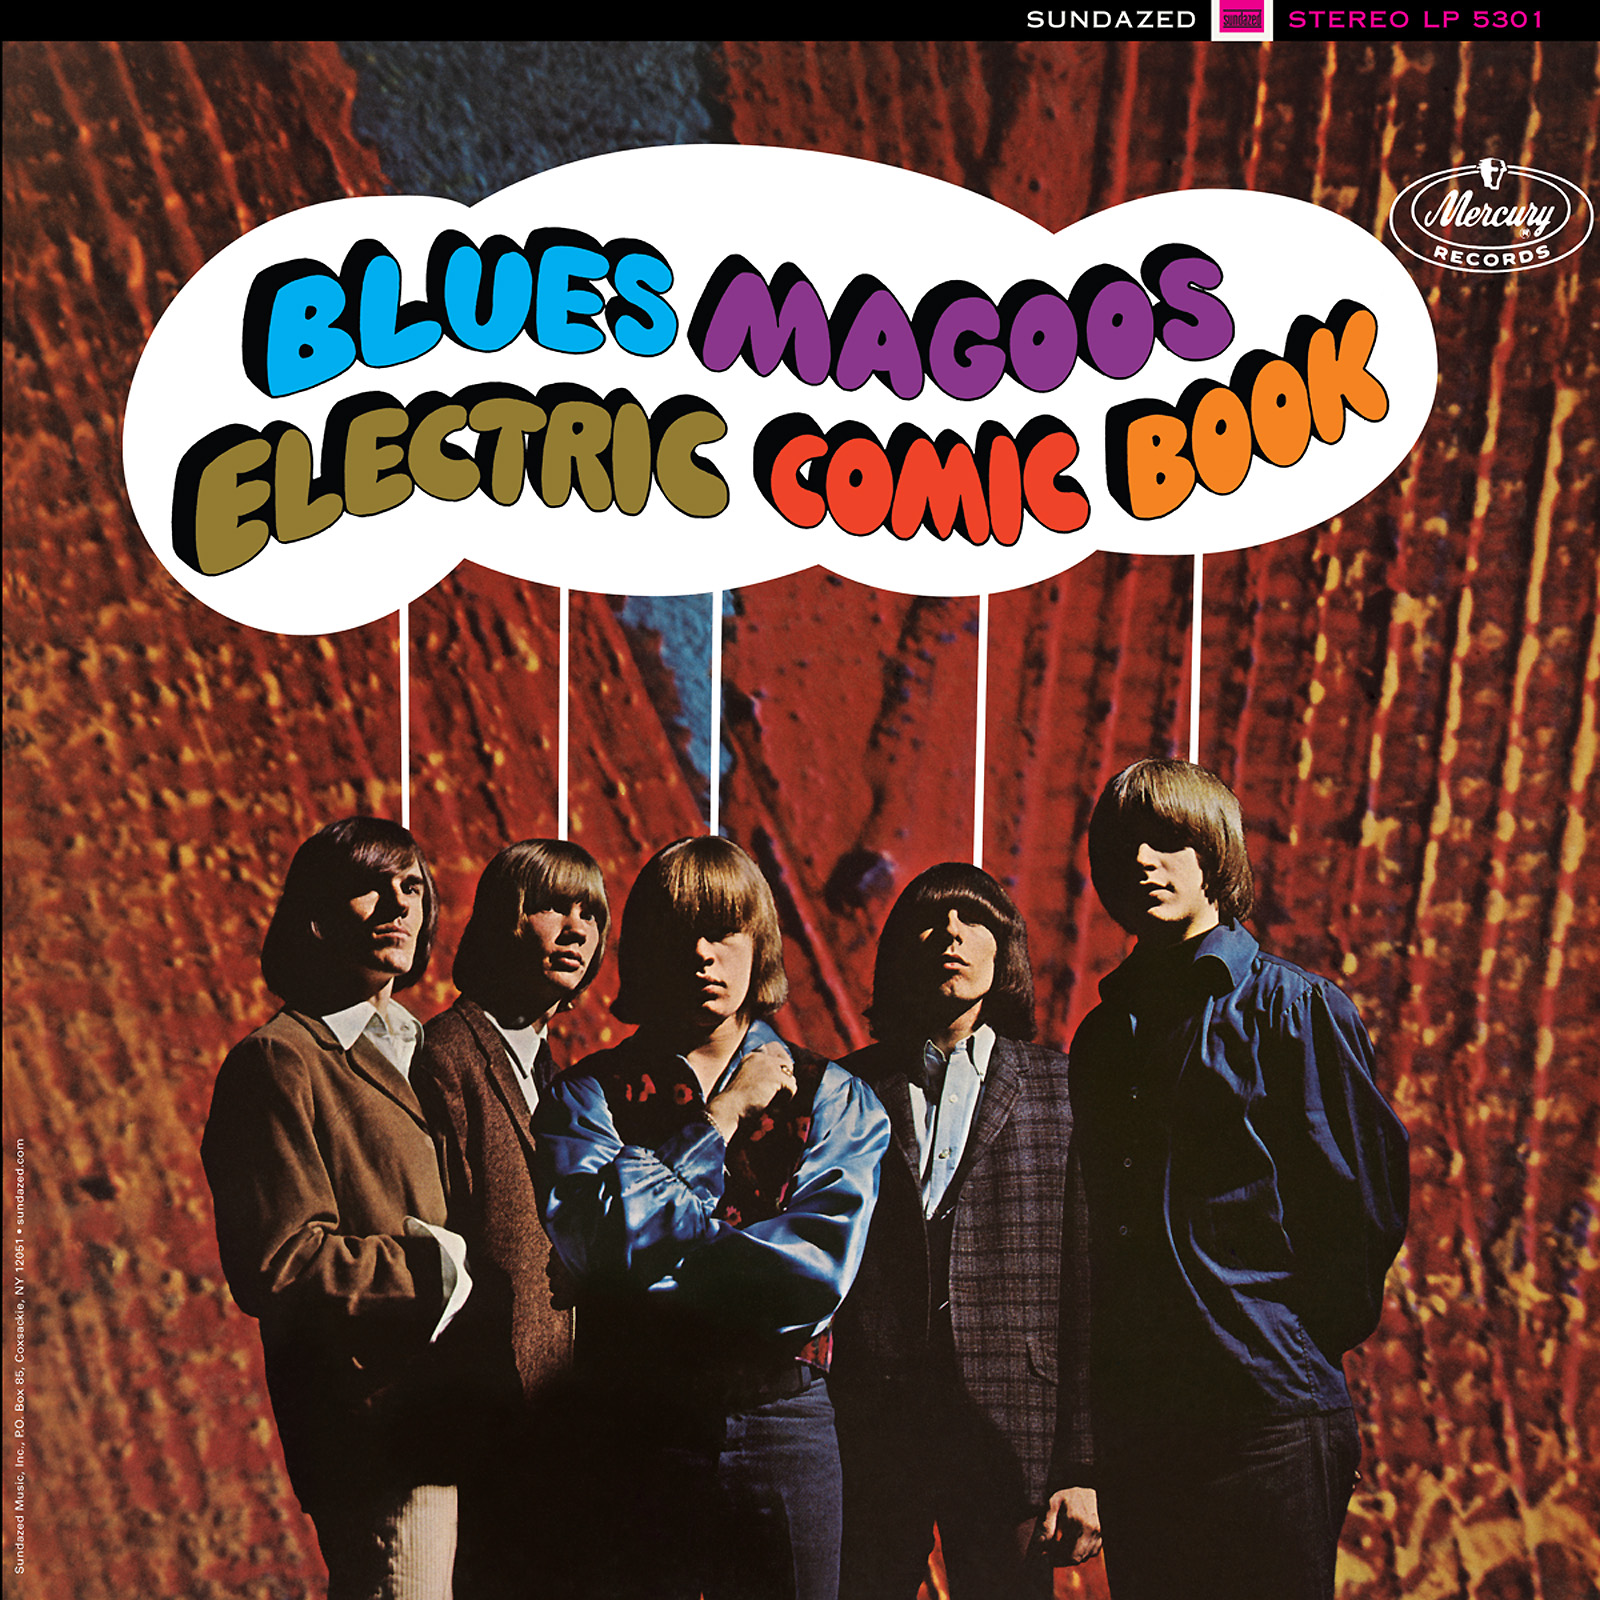 Blues Magoos - Electric Comic Book LP